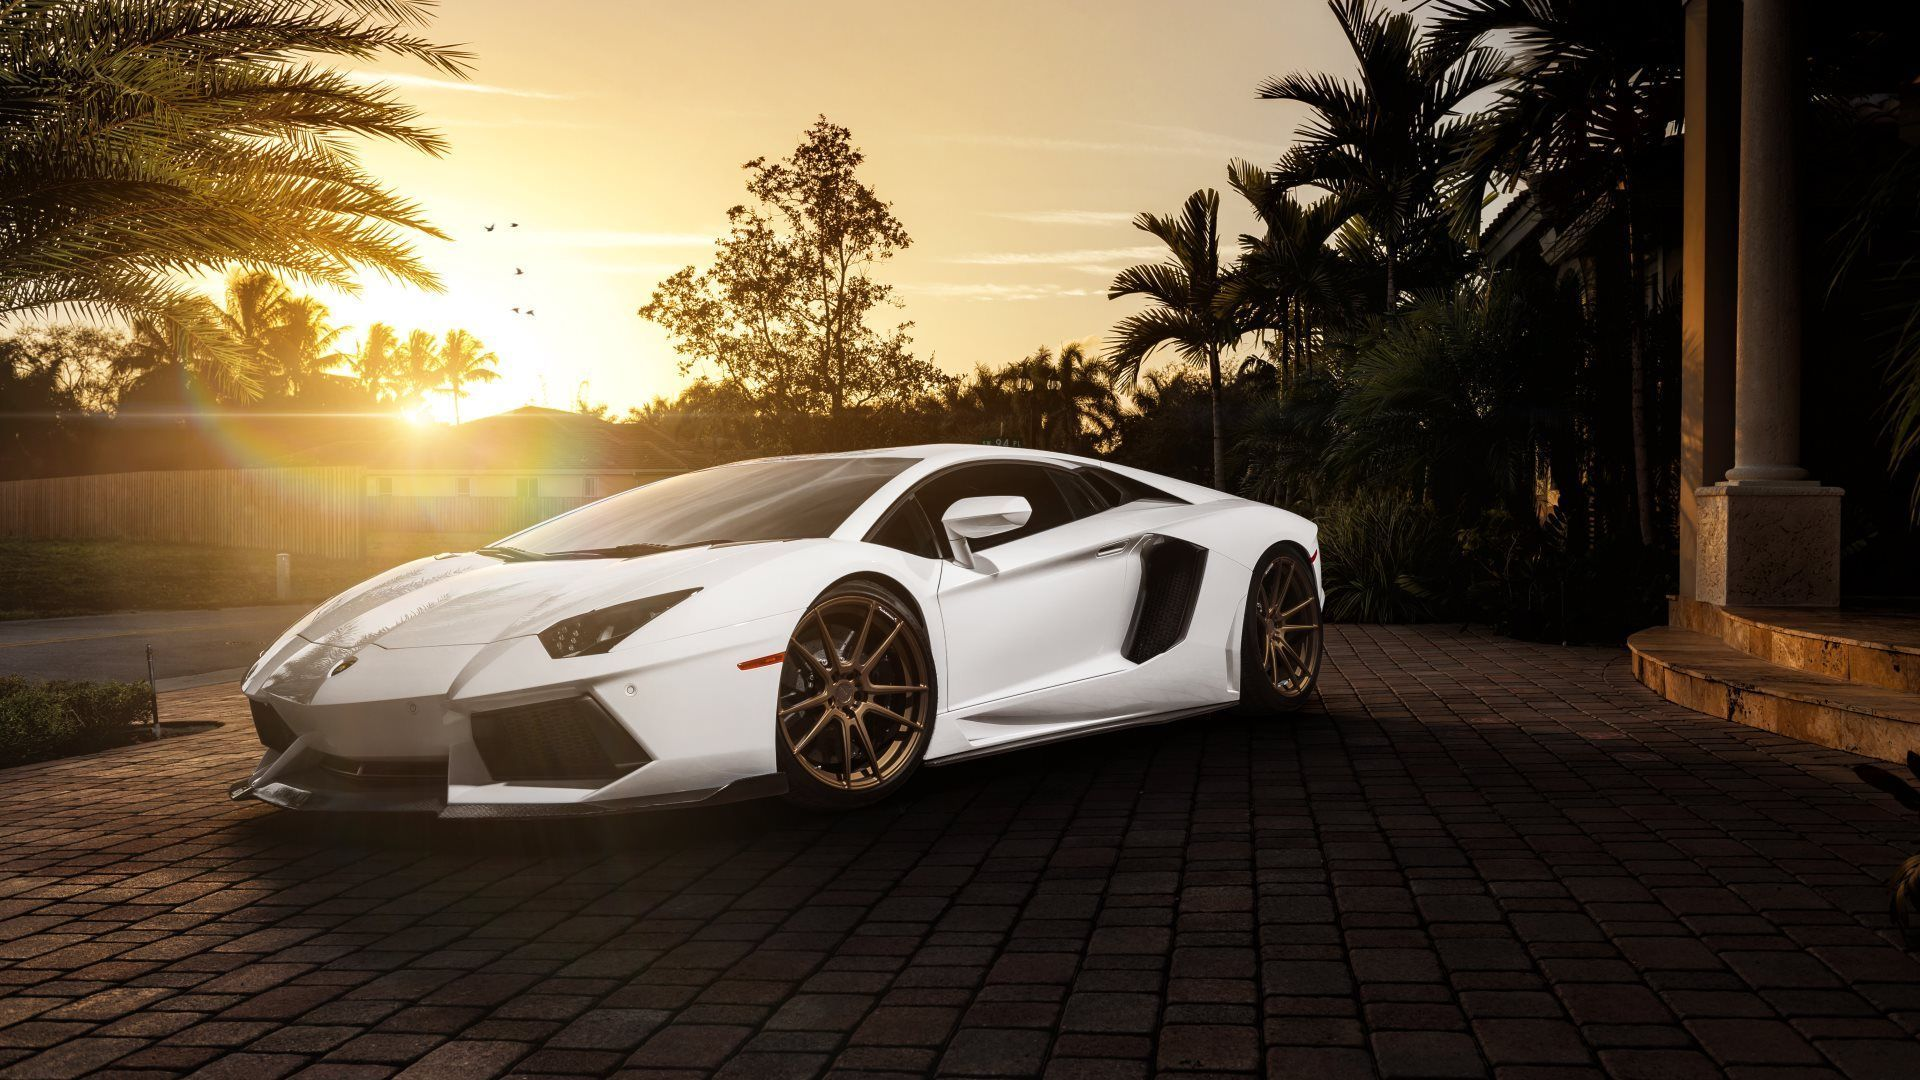 Super Cool Car Supercoolcarswallpapers Cars Backgrounds Download Wallpaper Pinterest Car Wallpapers And Wallpaper